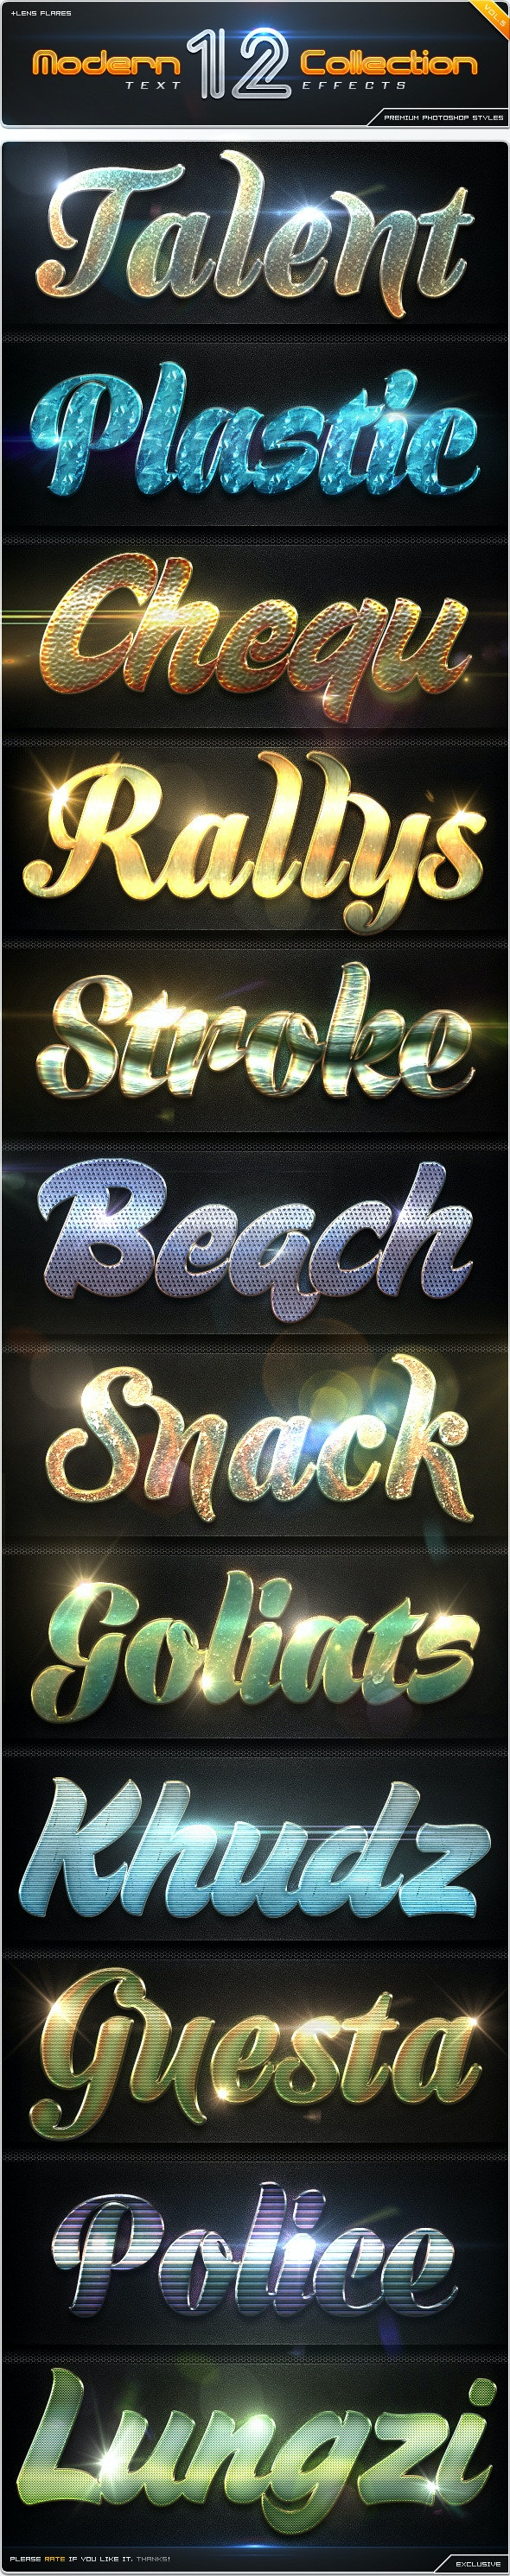 12 Modern Collection Text Effect Styles Vol.5 - Text Effects Styles